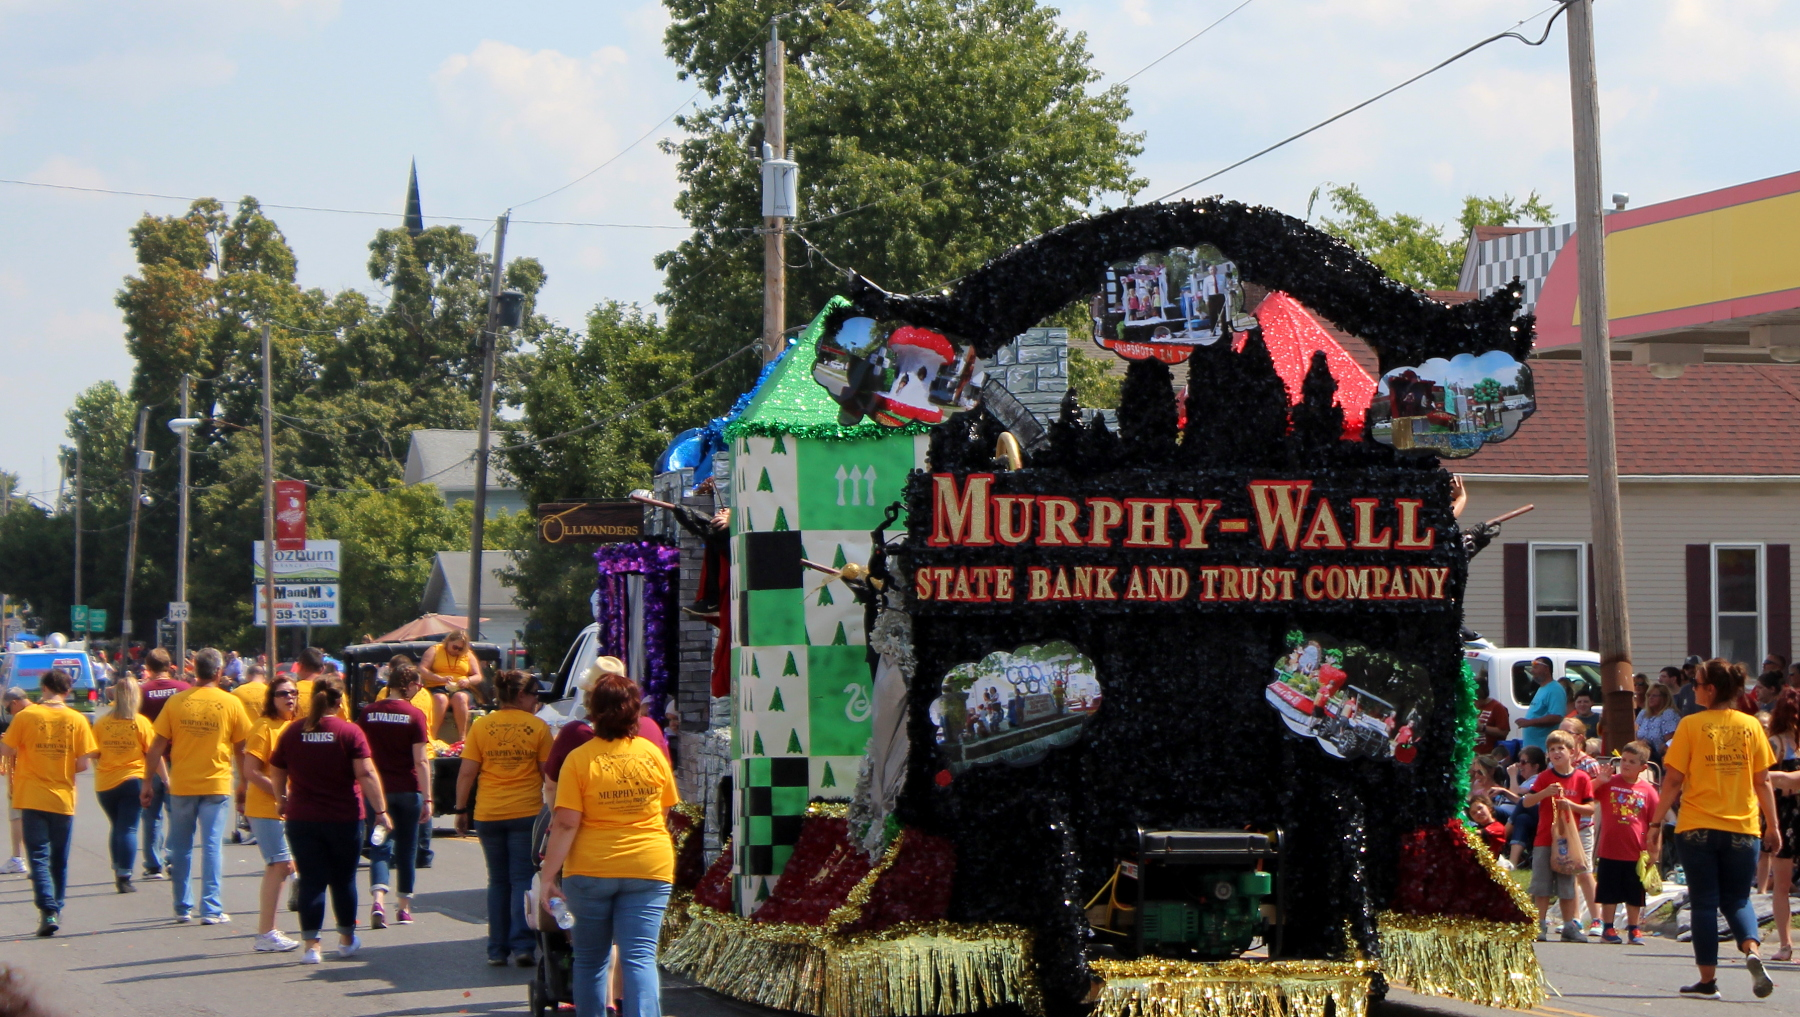 The back of the Murphy-Wall State Bank and Trust Company 2017 Apple Festival Float themed Harry Potter